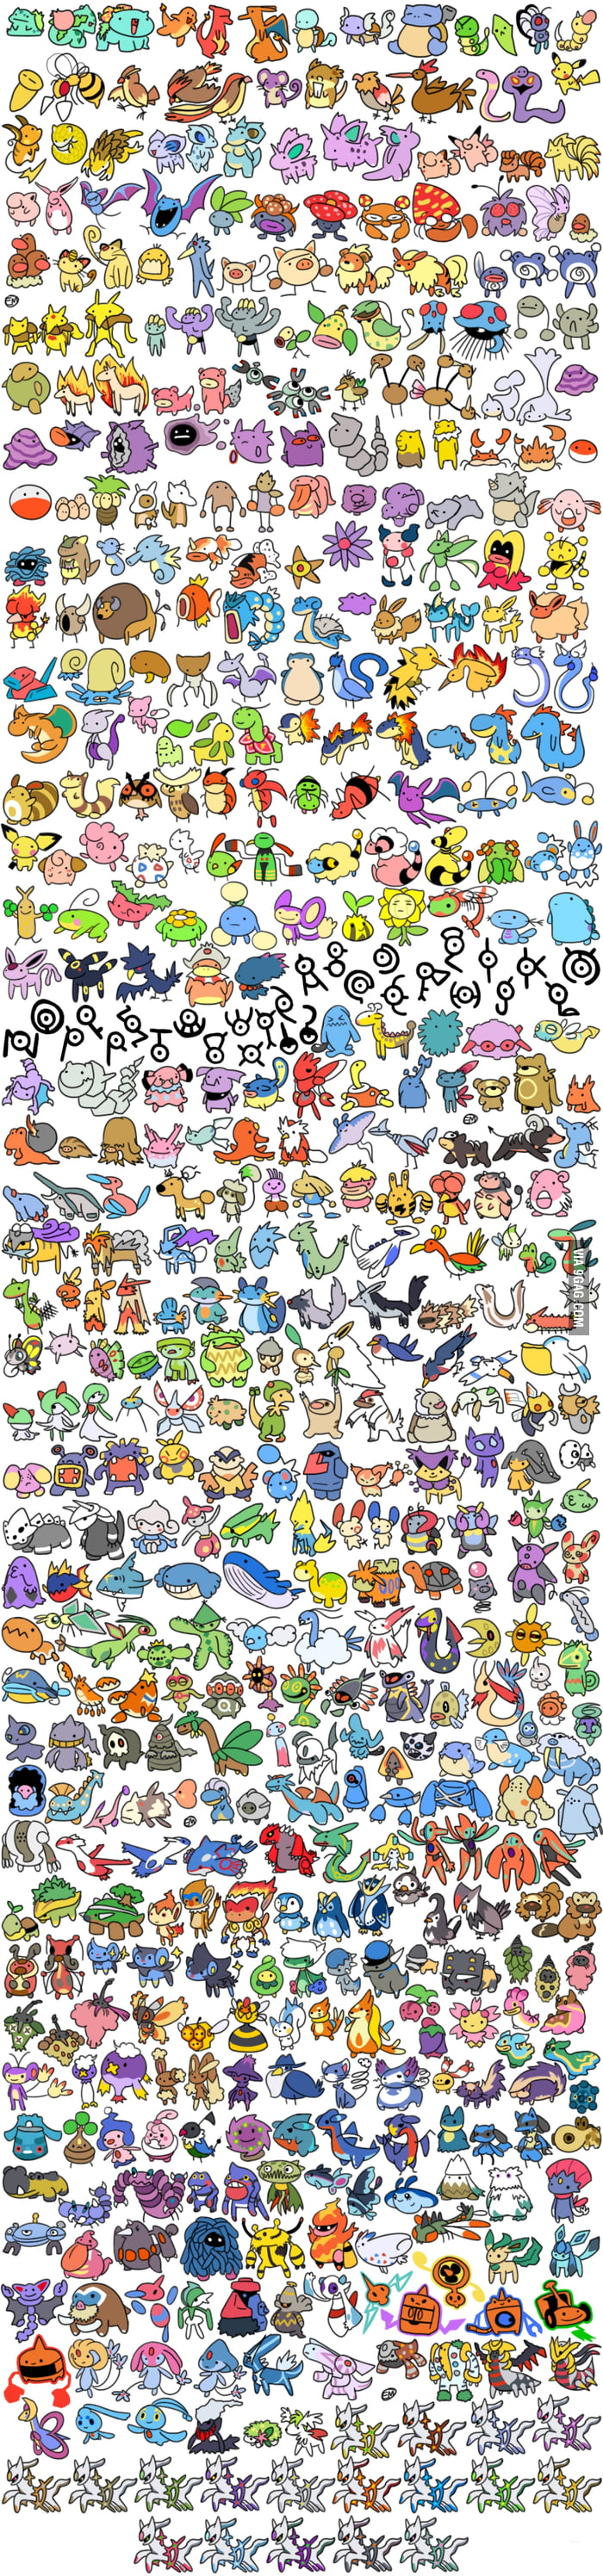 Just some pokemons.